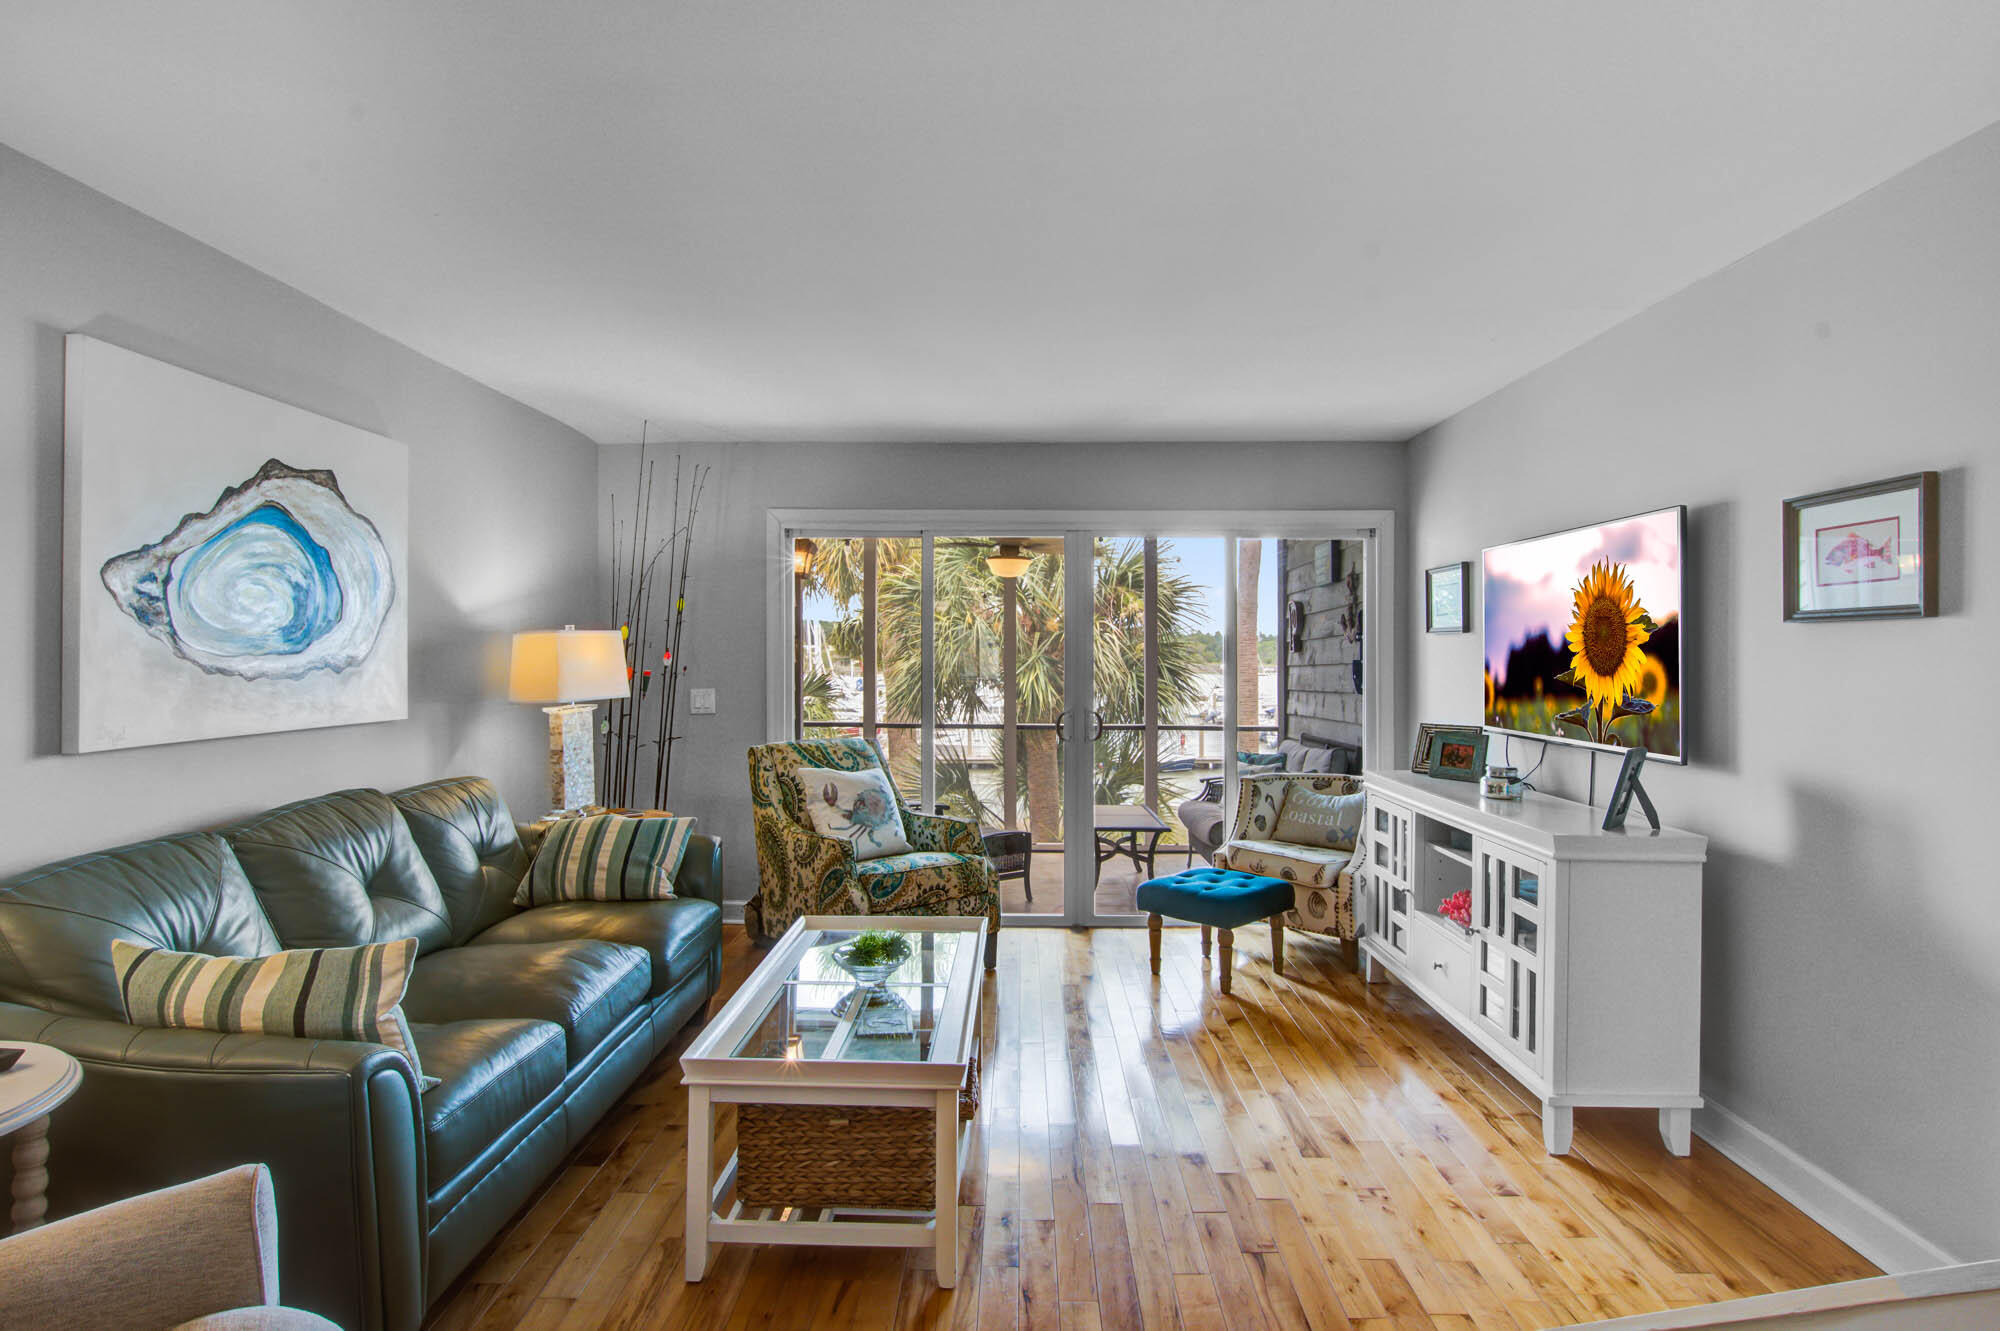 Mariners Cay Homes For Sale - 56 Mariners Cay, Folly Beach, SC - 9